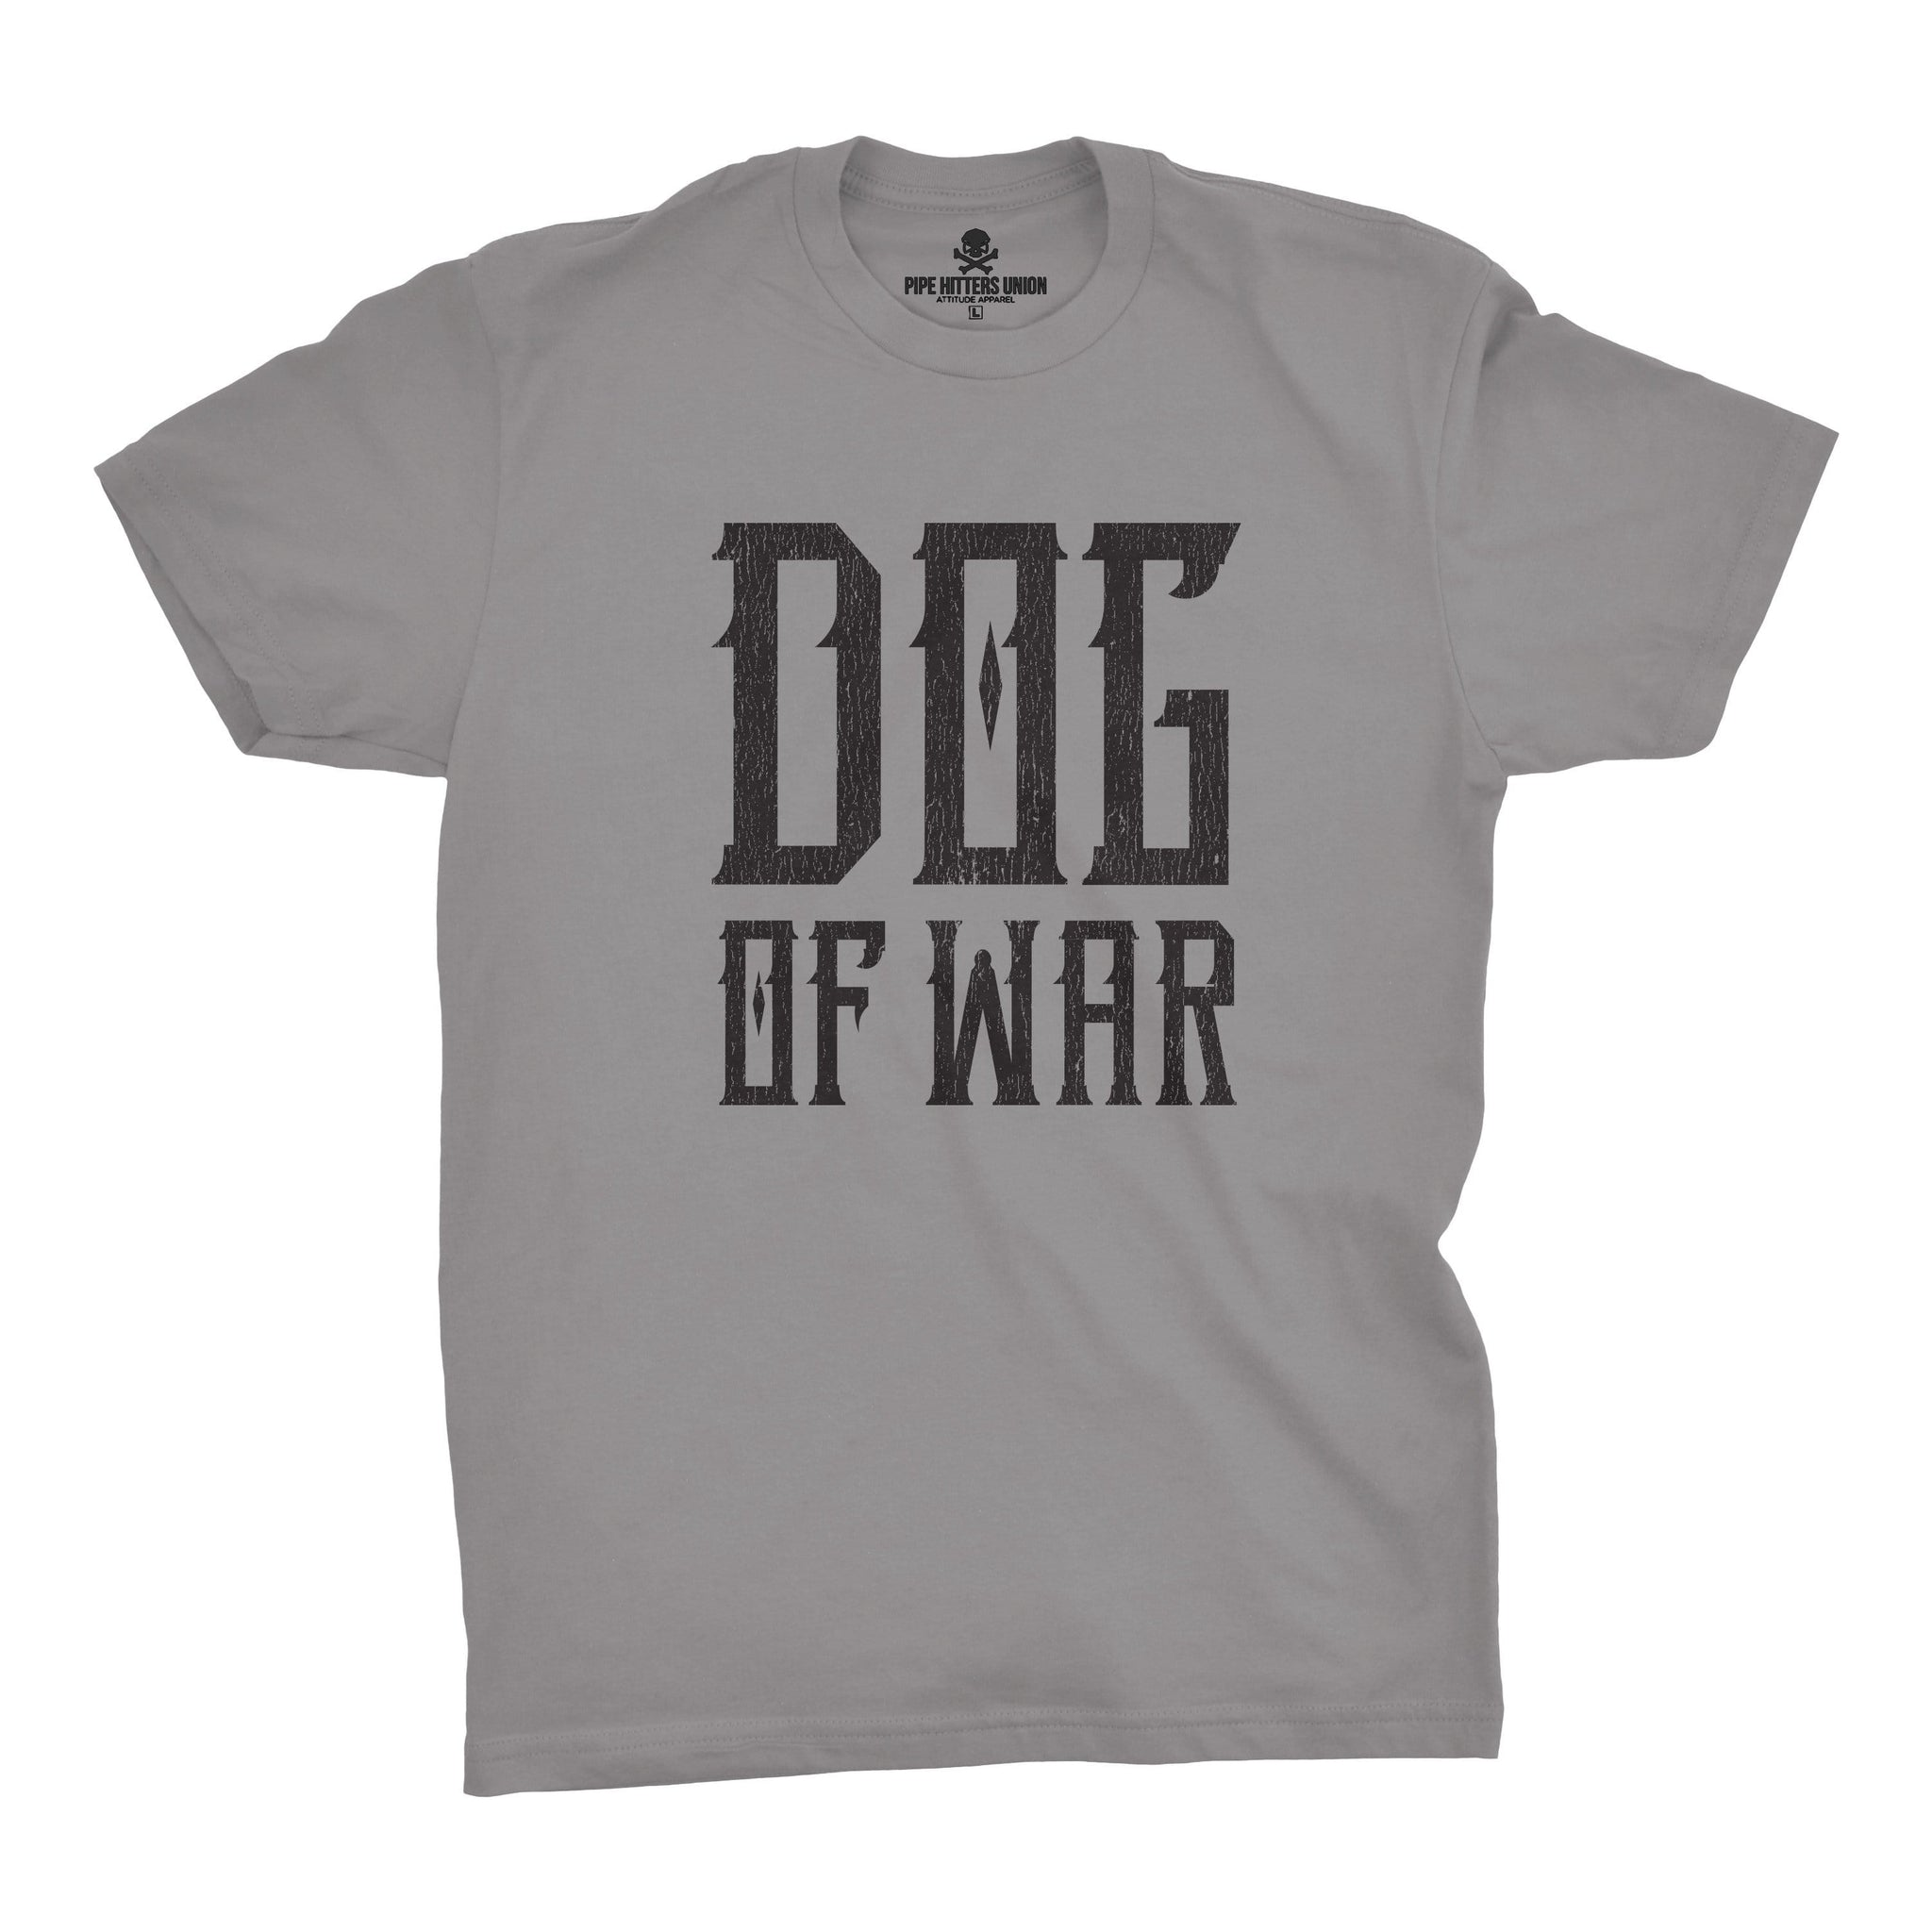 Dog of War - Pipe Hitters Union